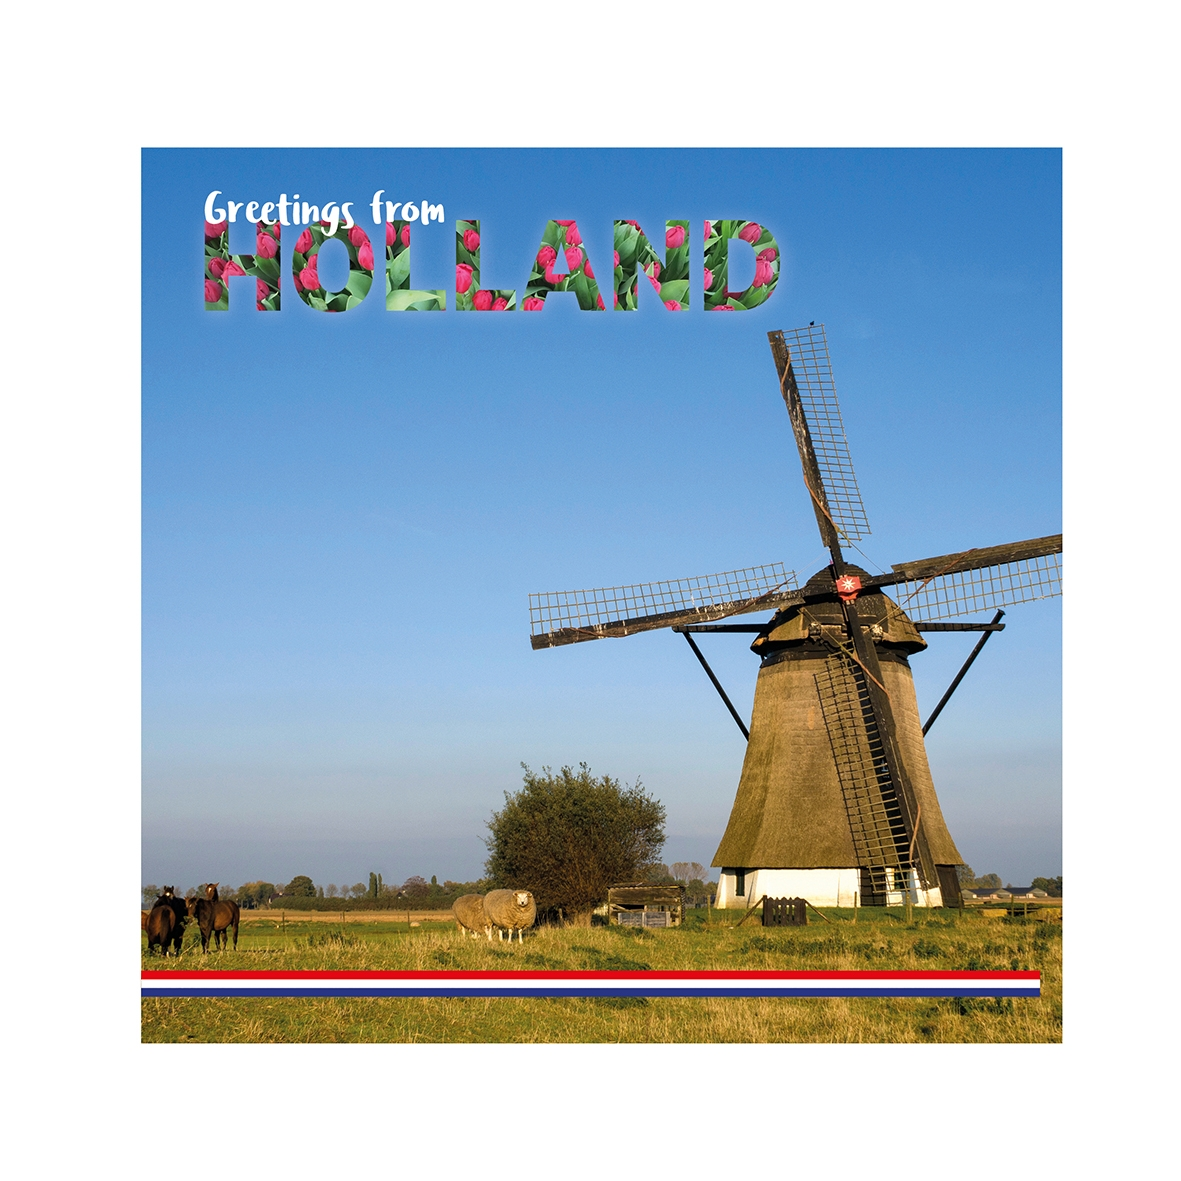 Greetings from Holland - Mill